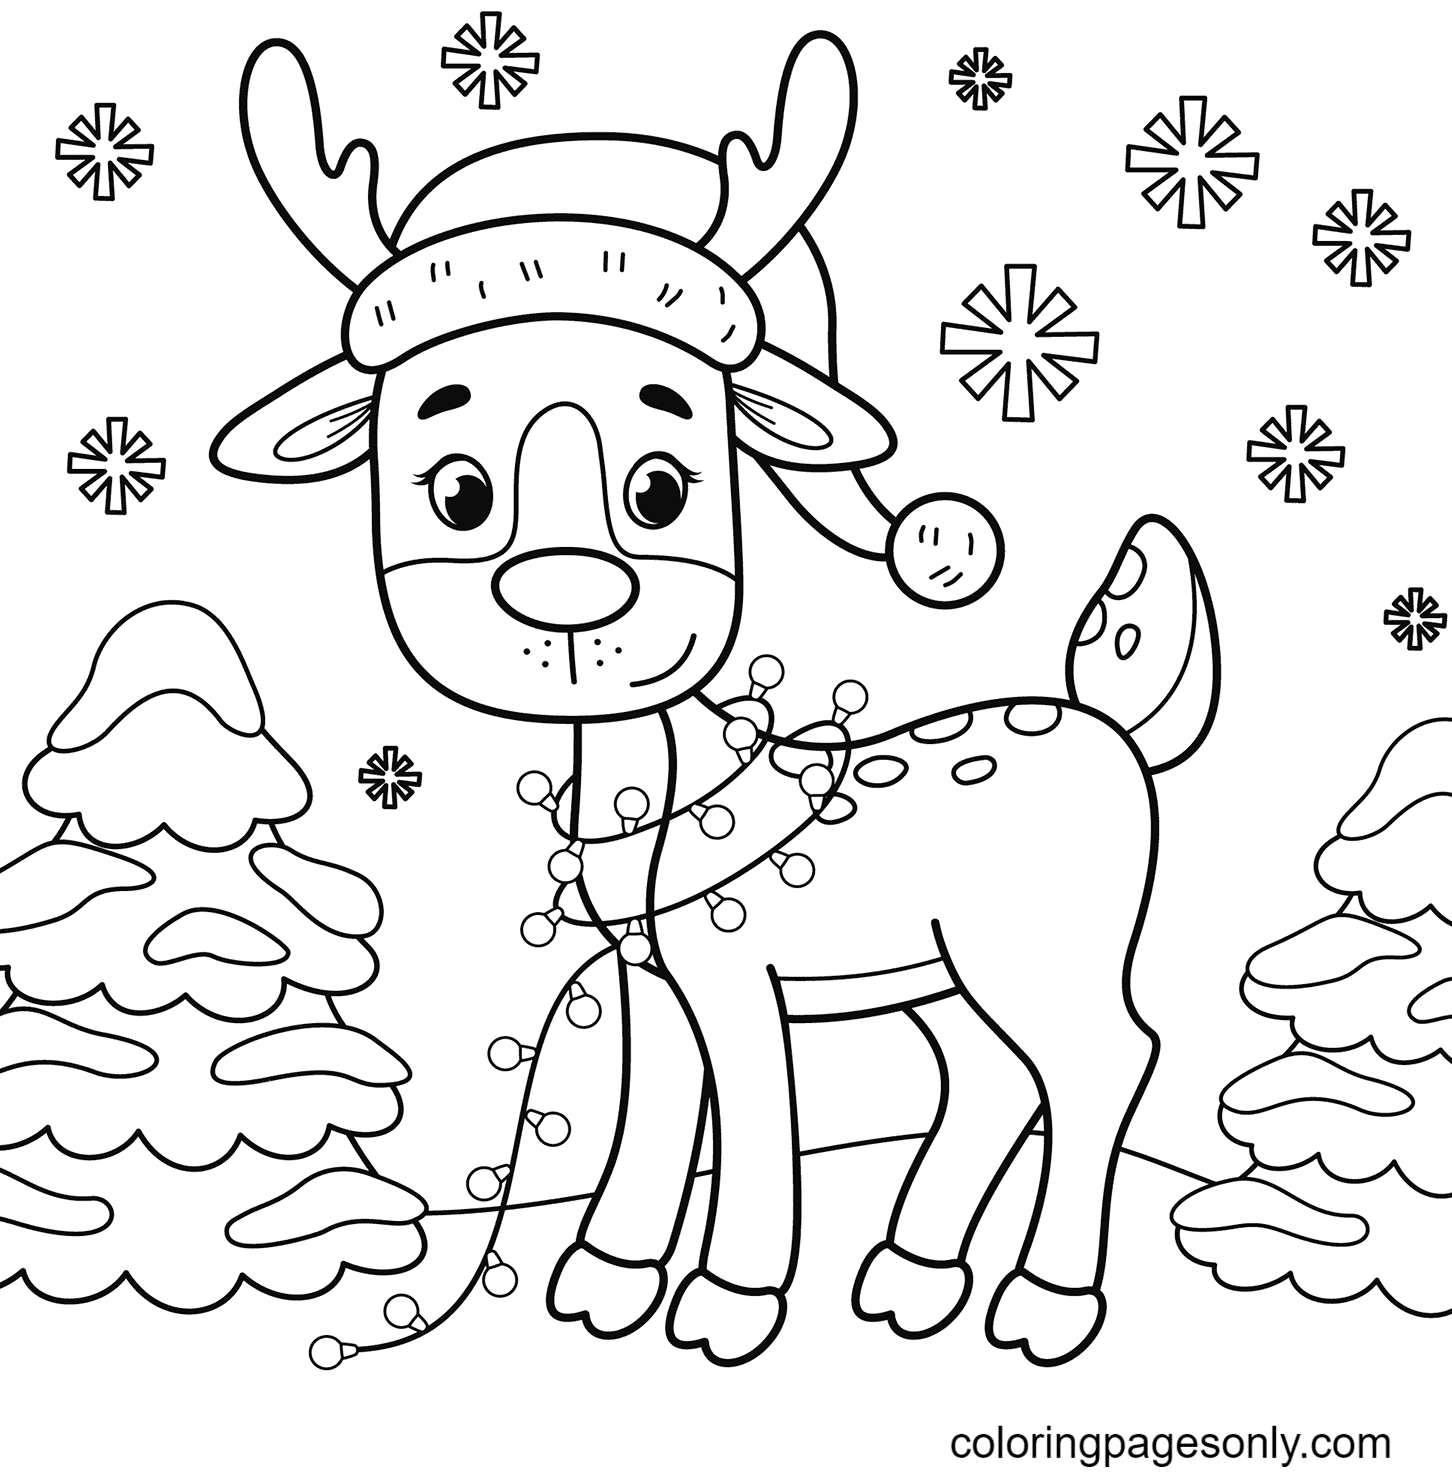 Christmas Little Reindeer Coloring Page